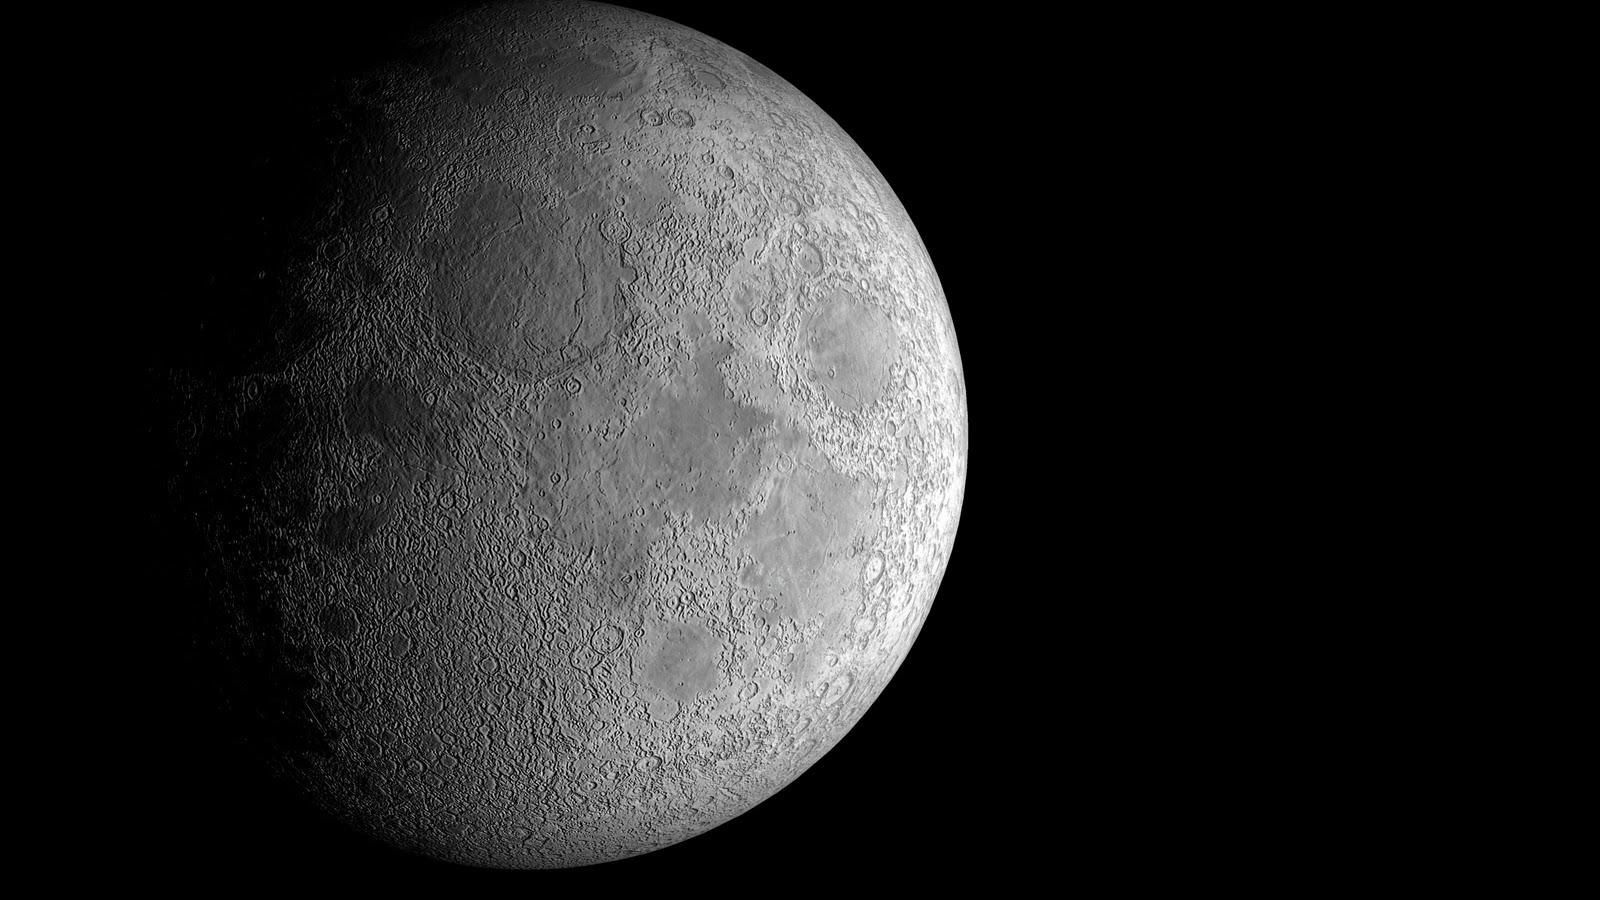 Animizationing  Moon finished  And an Earth Specular test  HD Wallpaper